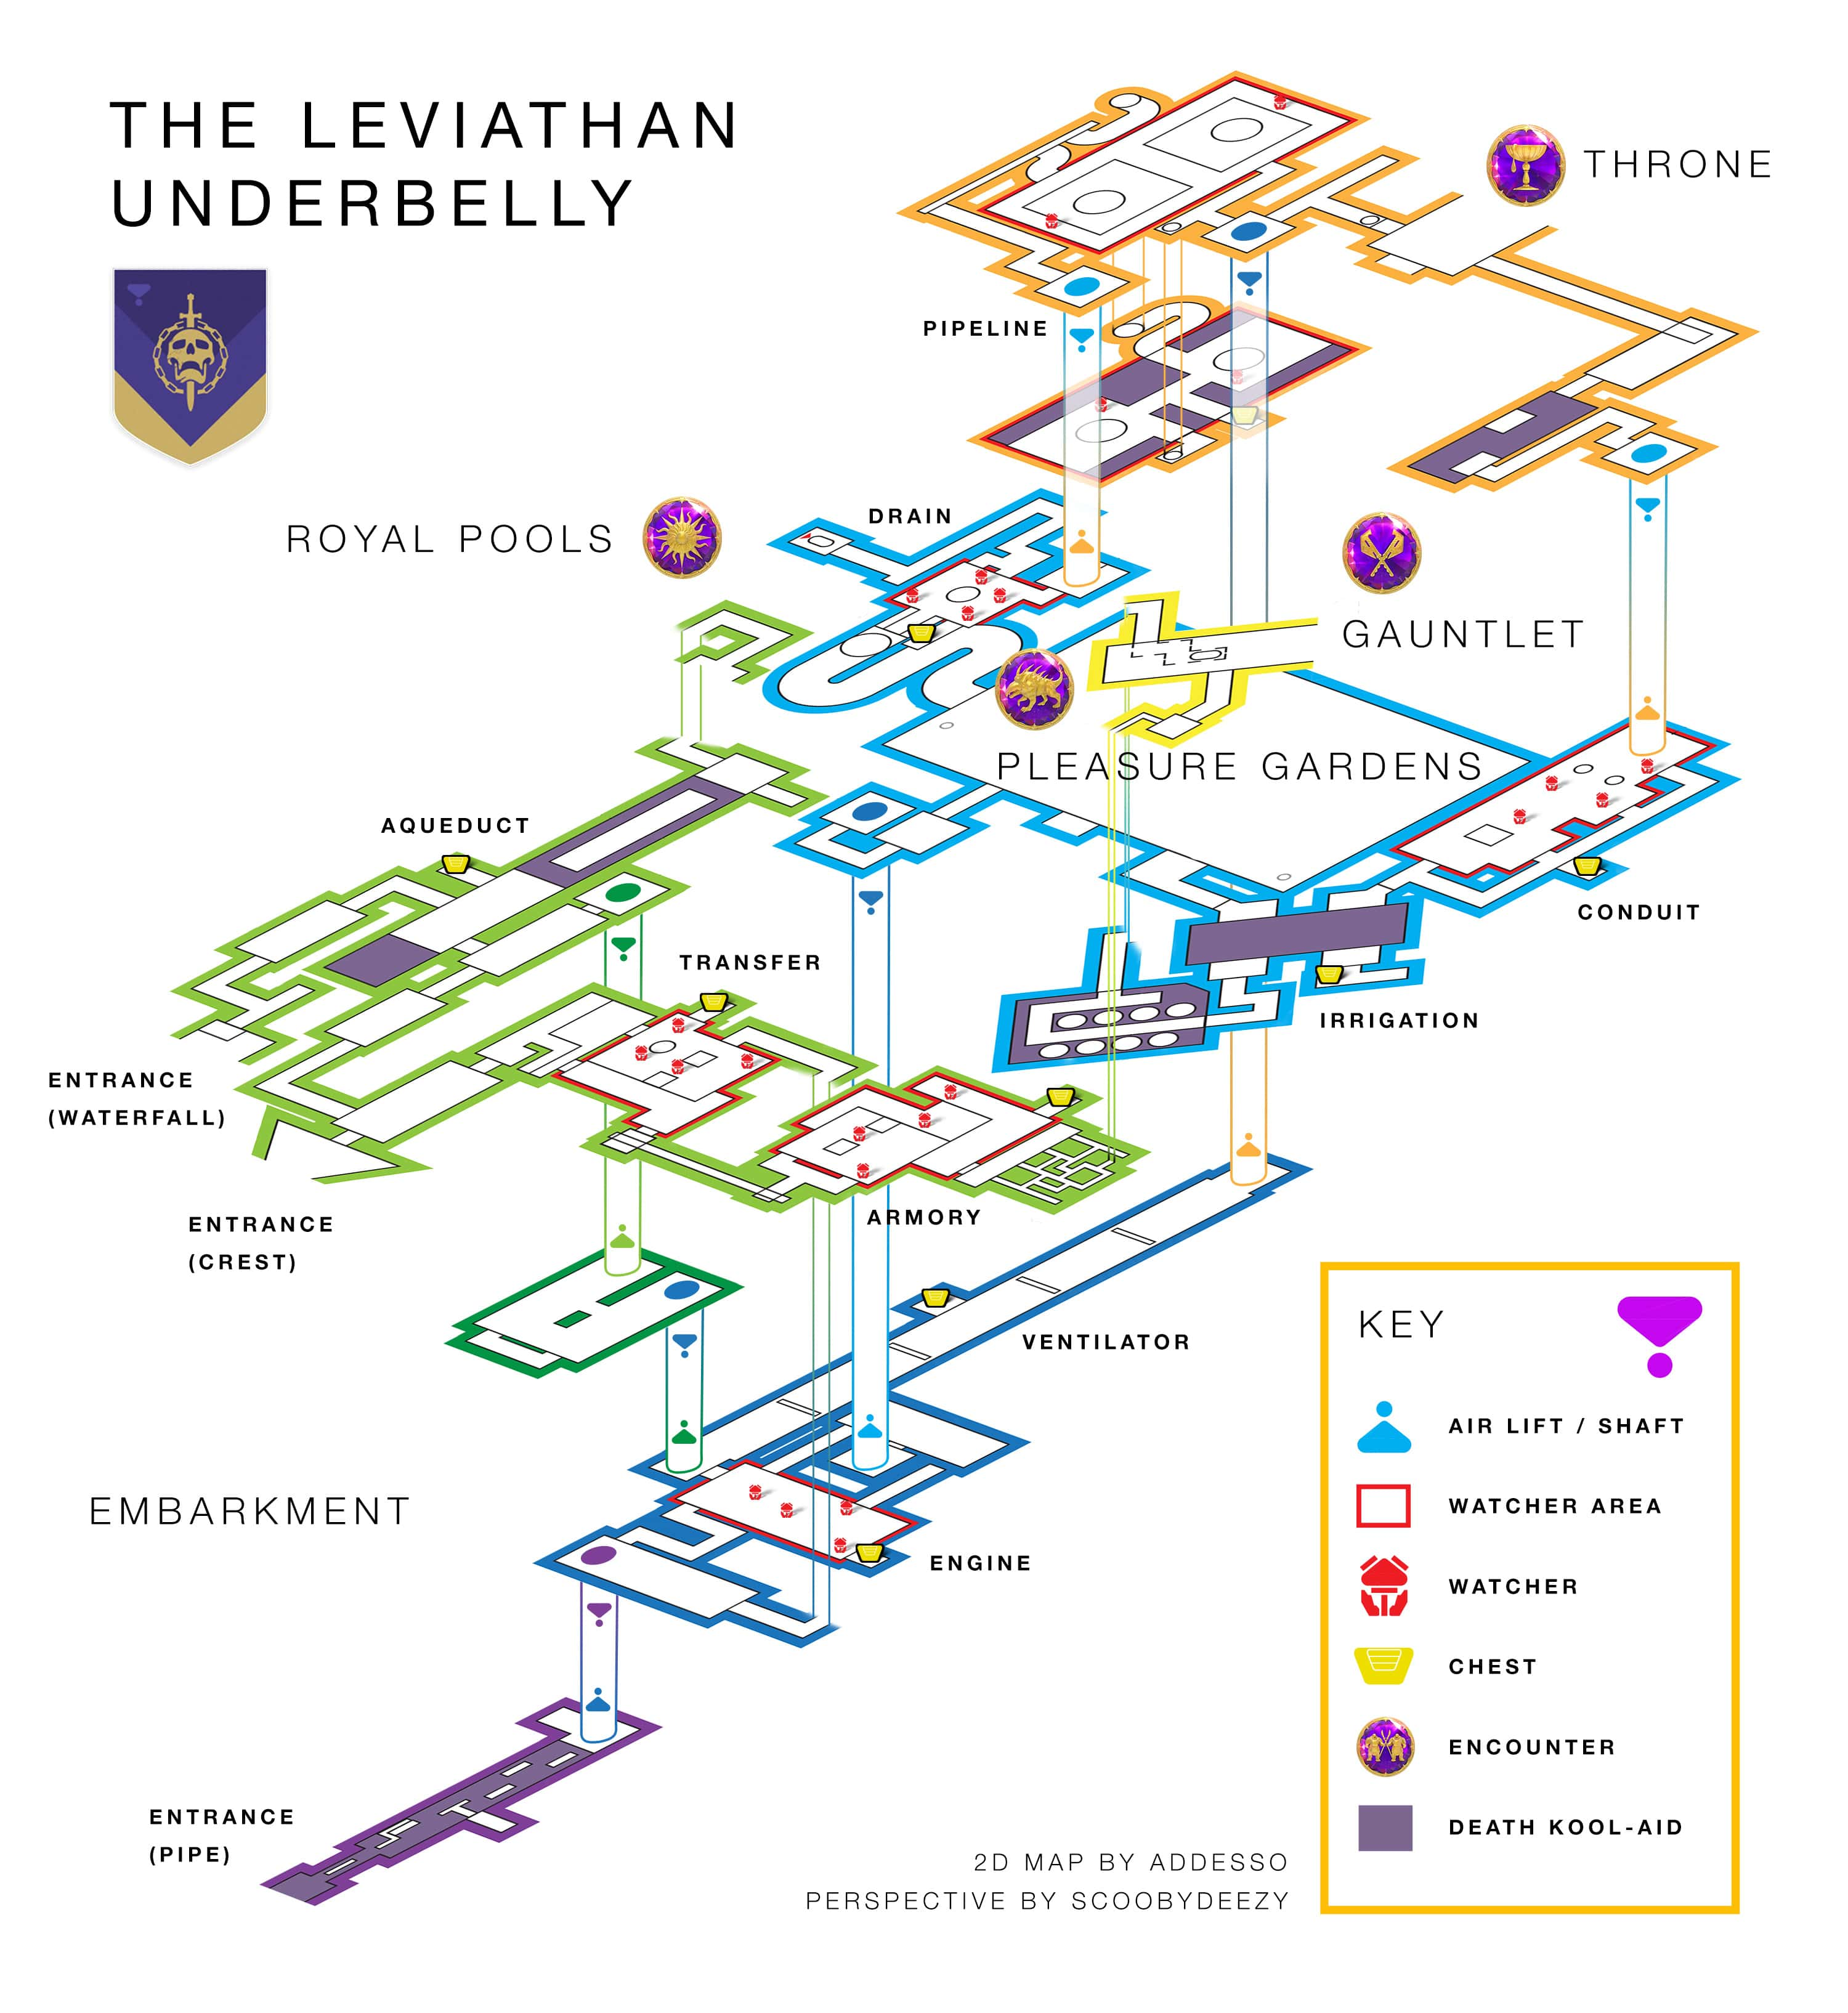 Destiny 2 Underbelly Guide Lever Combination And How To Find The Piping Layout Engine Schematic Above Weve Embedded A Brilliantly Constructed Map Of Leviathan Which Shows Its Entire In Really Helpful 3d Format